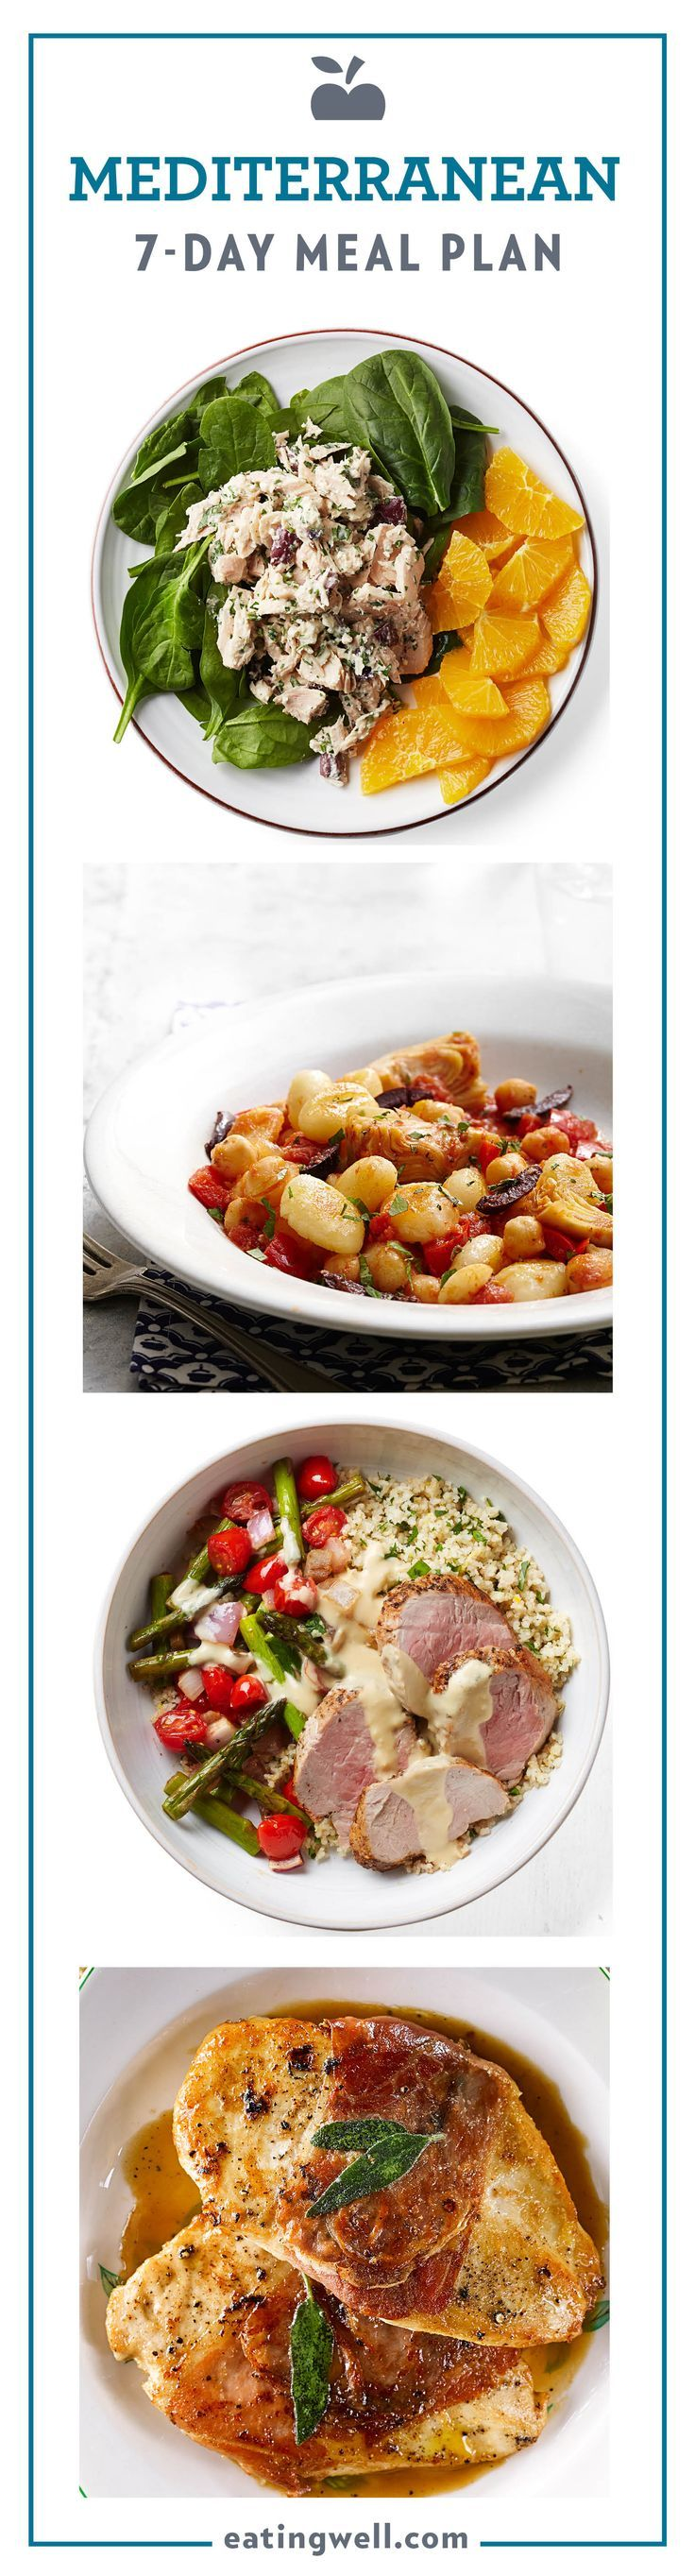 7 day mediterranean diet meal plan to lose weight salads fat burning meals plan tips mediterranean diet meal plan to lose weight we have developed the simplest and fastest way to preparing and eating delicious forumfinder Gallery